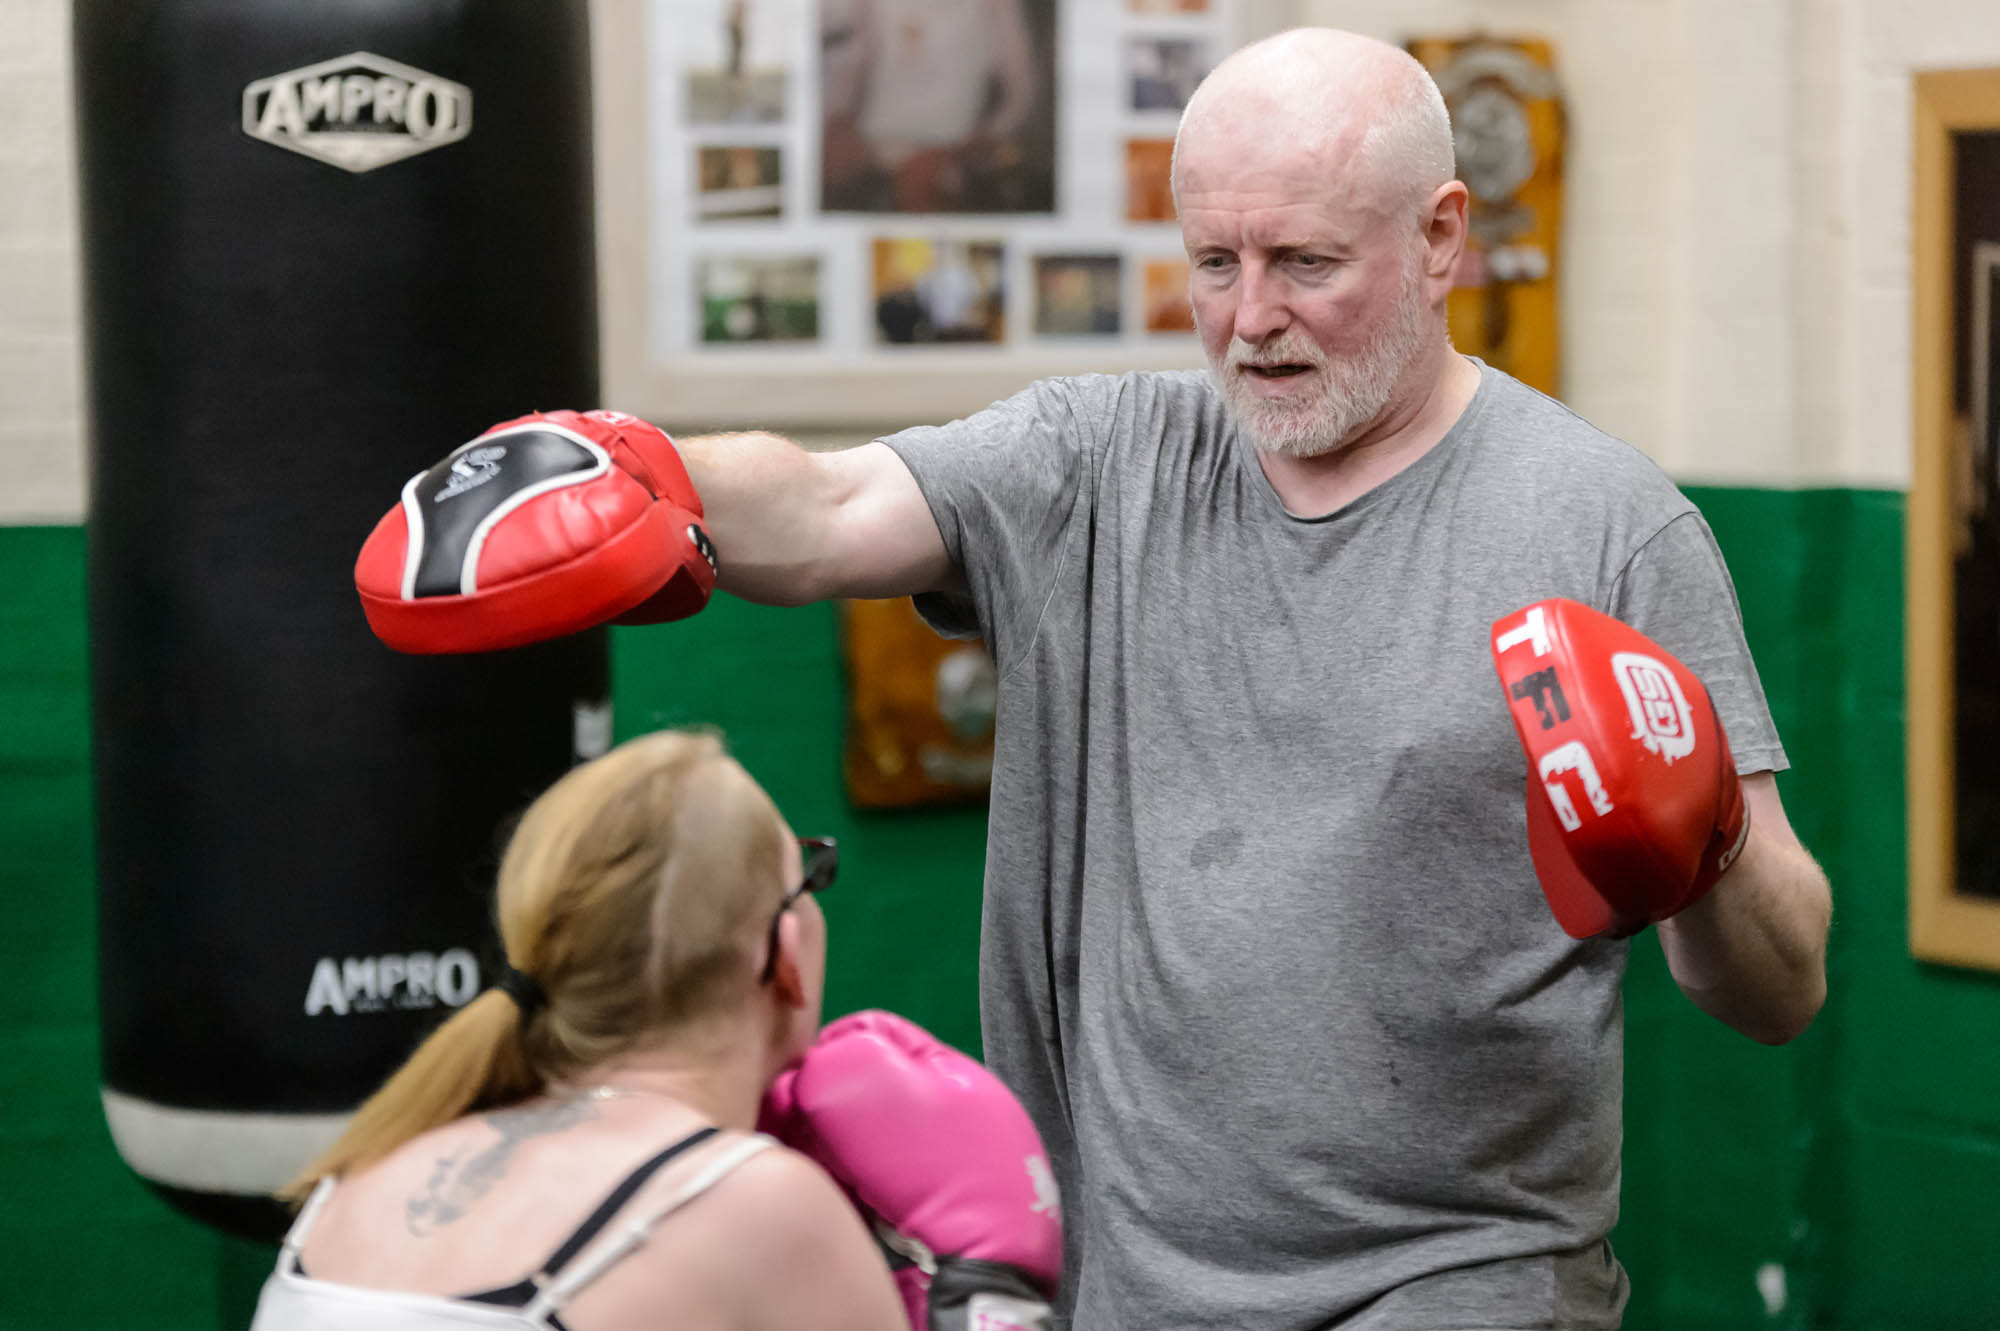 A woman and older man train in boxing together